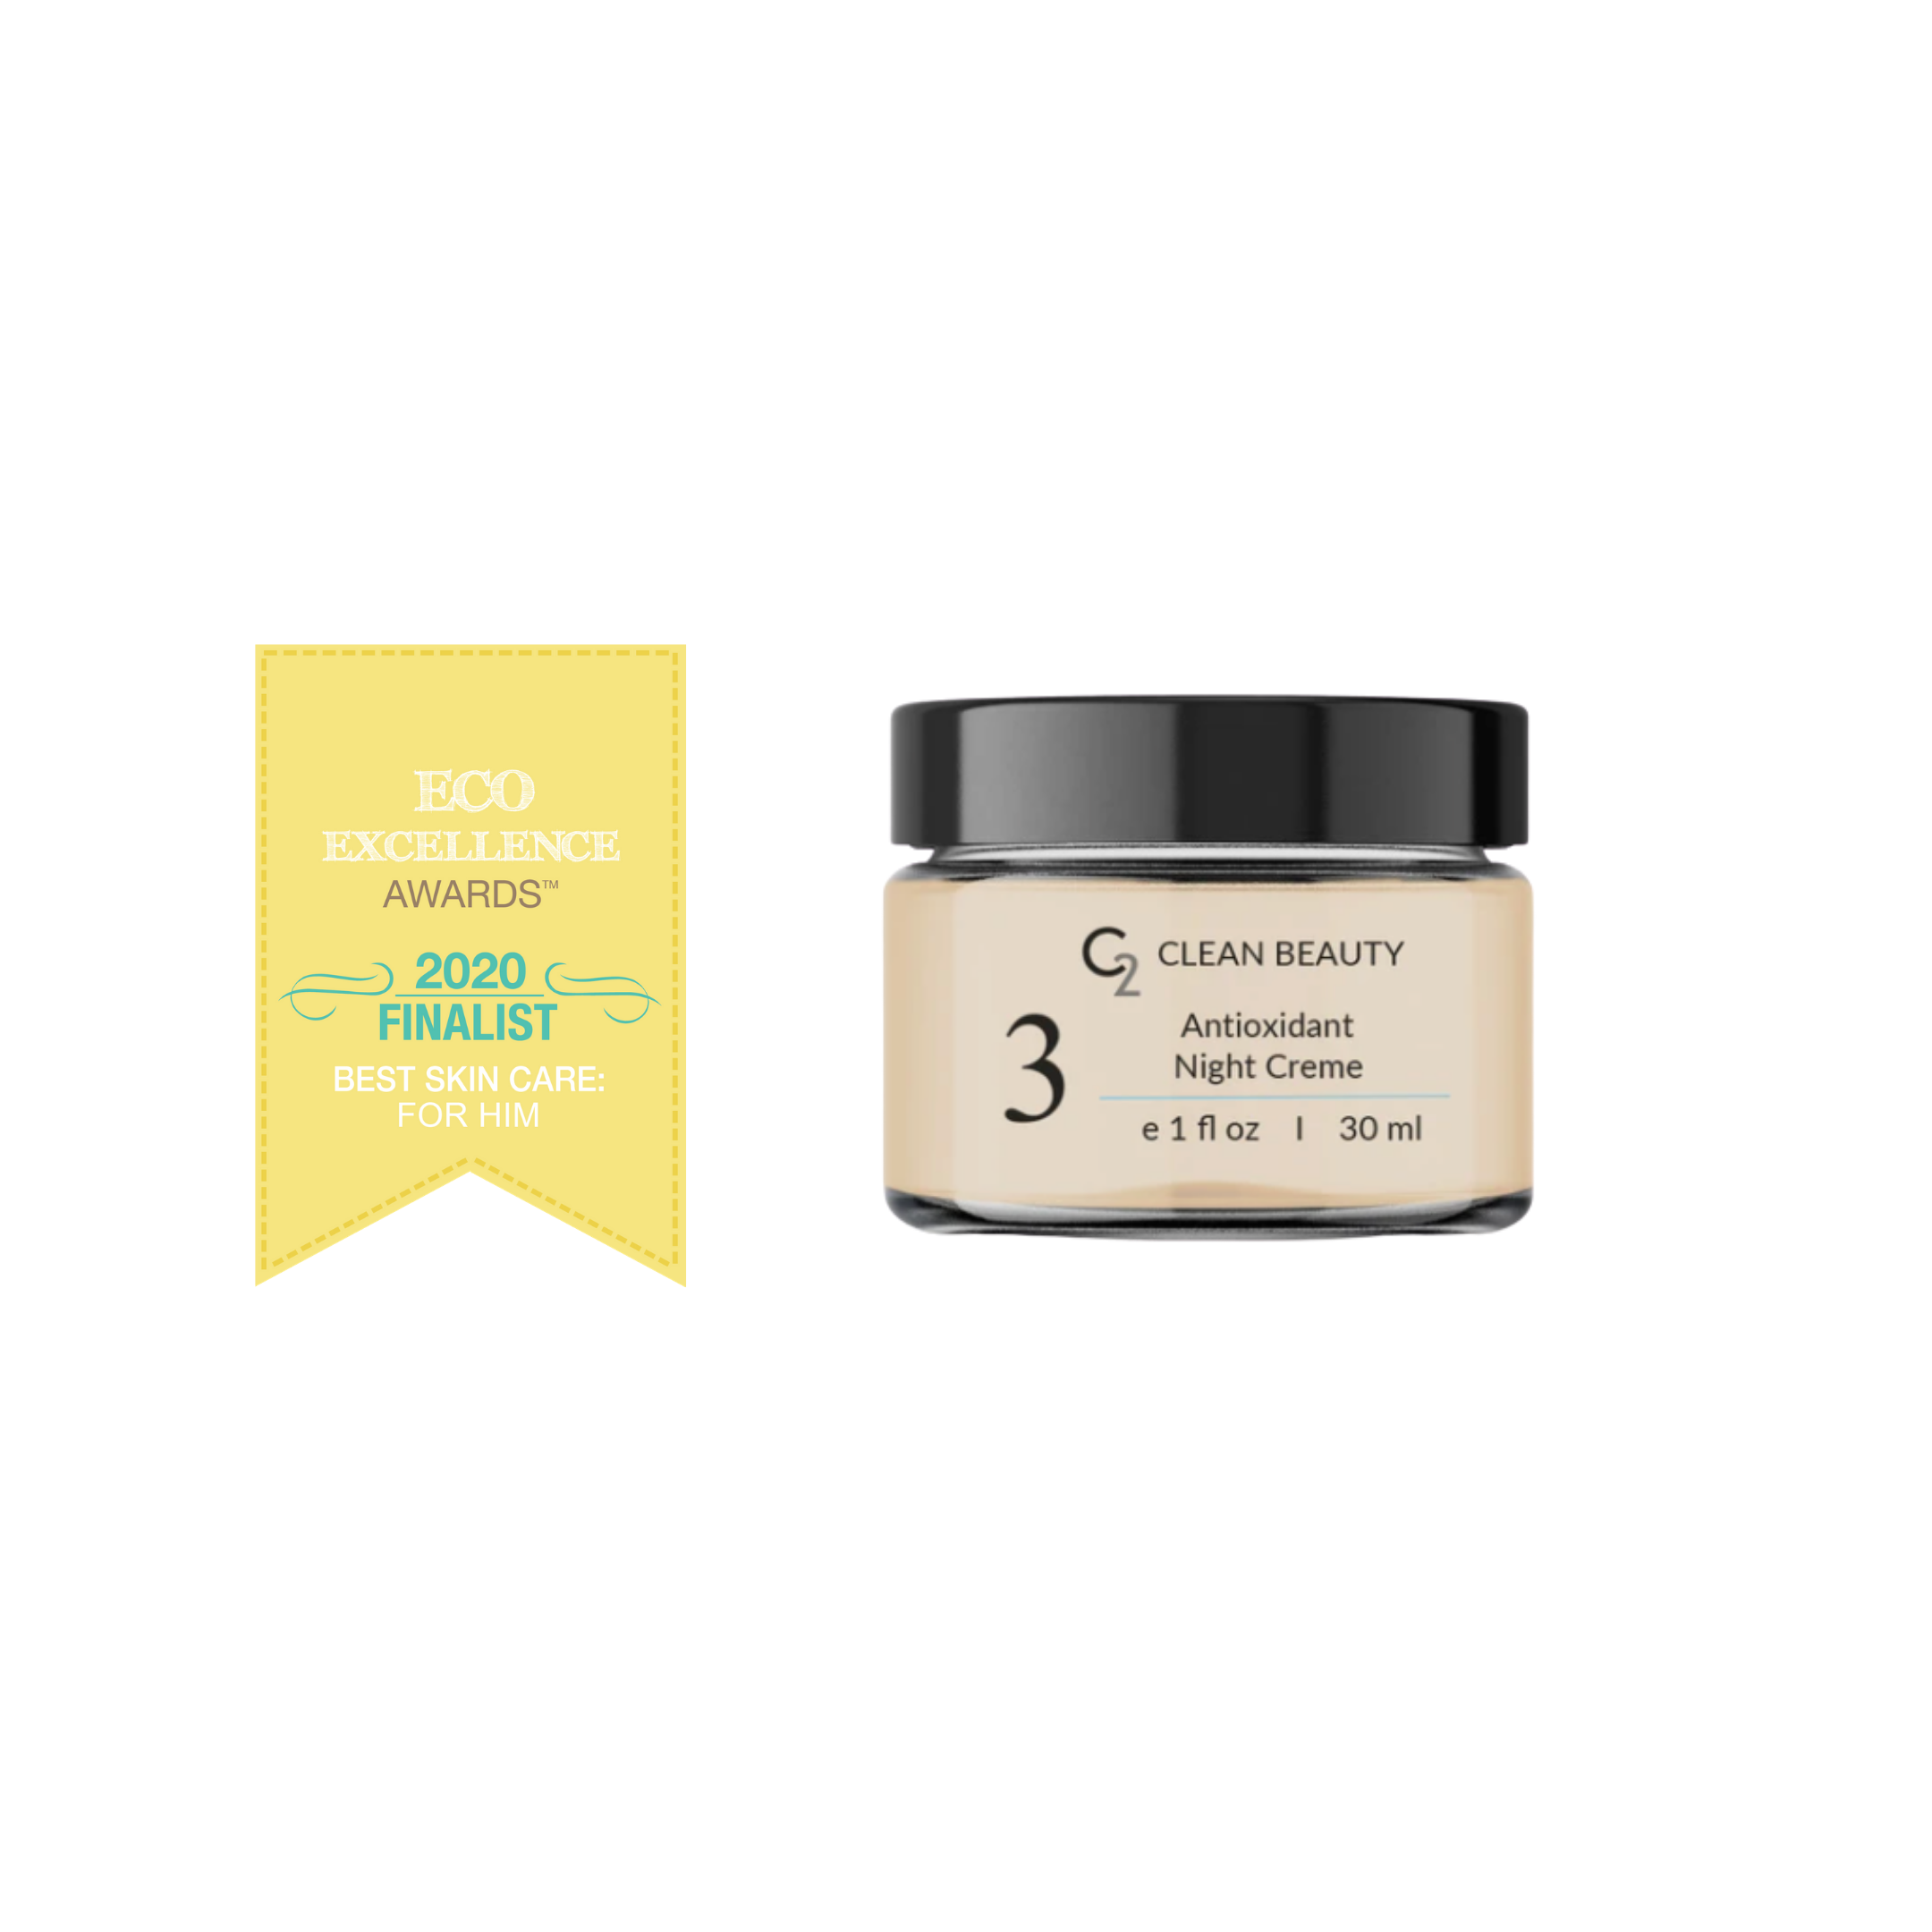 Award-Winning Antioxidant Night Creme